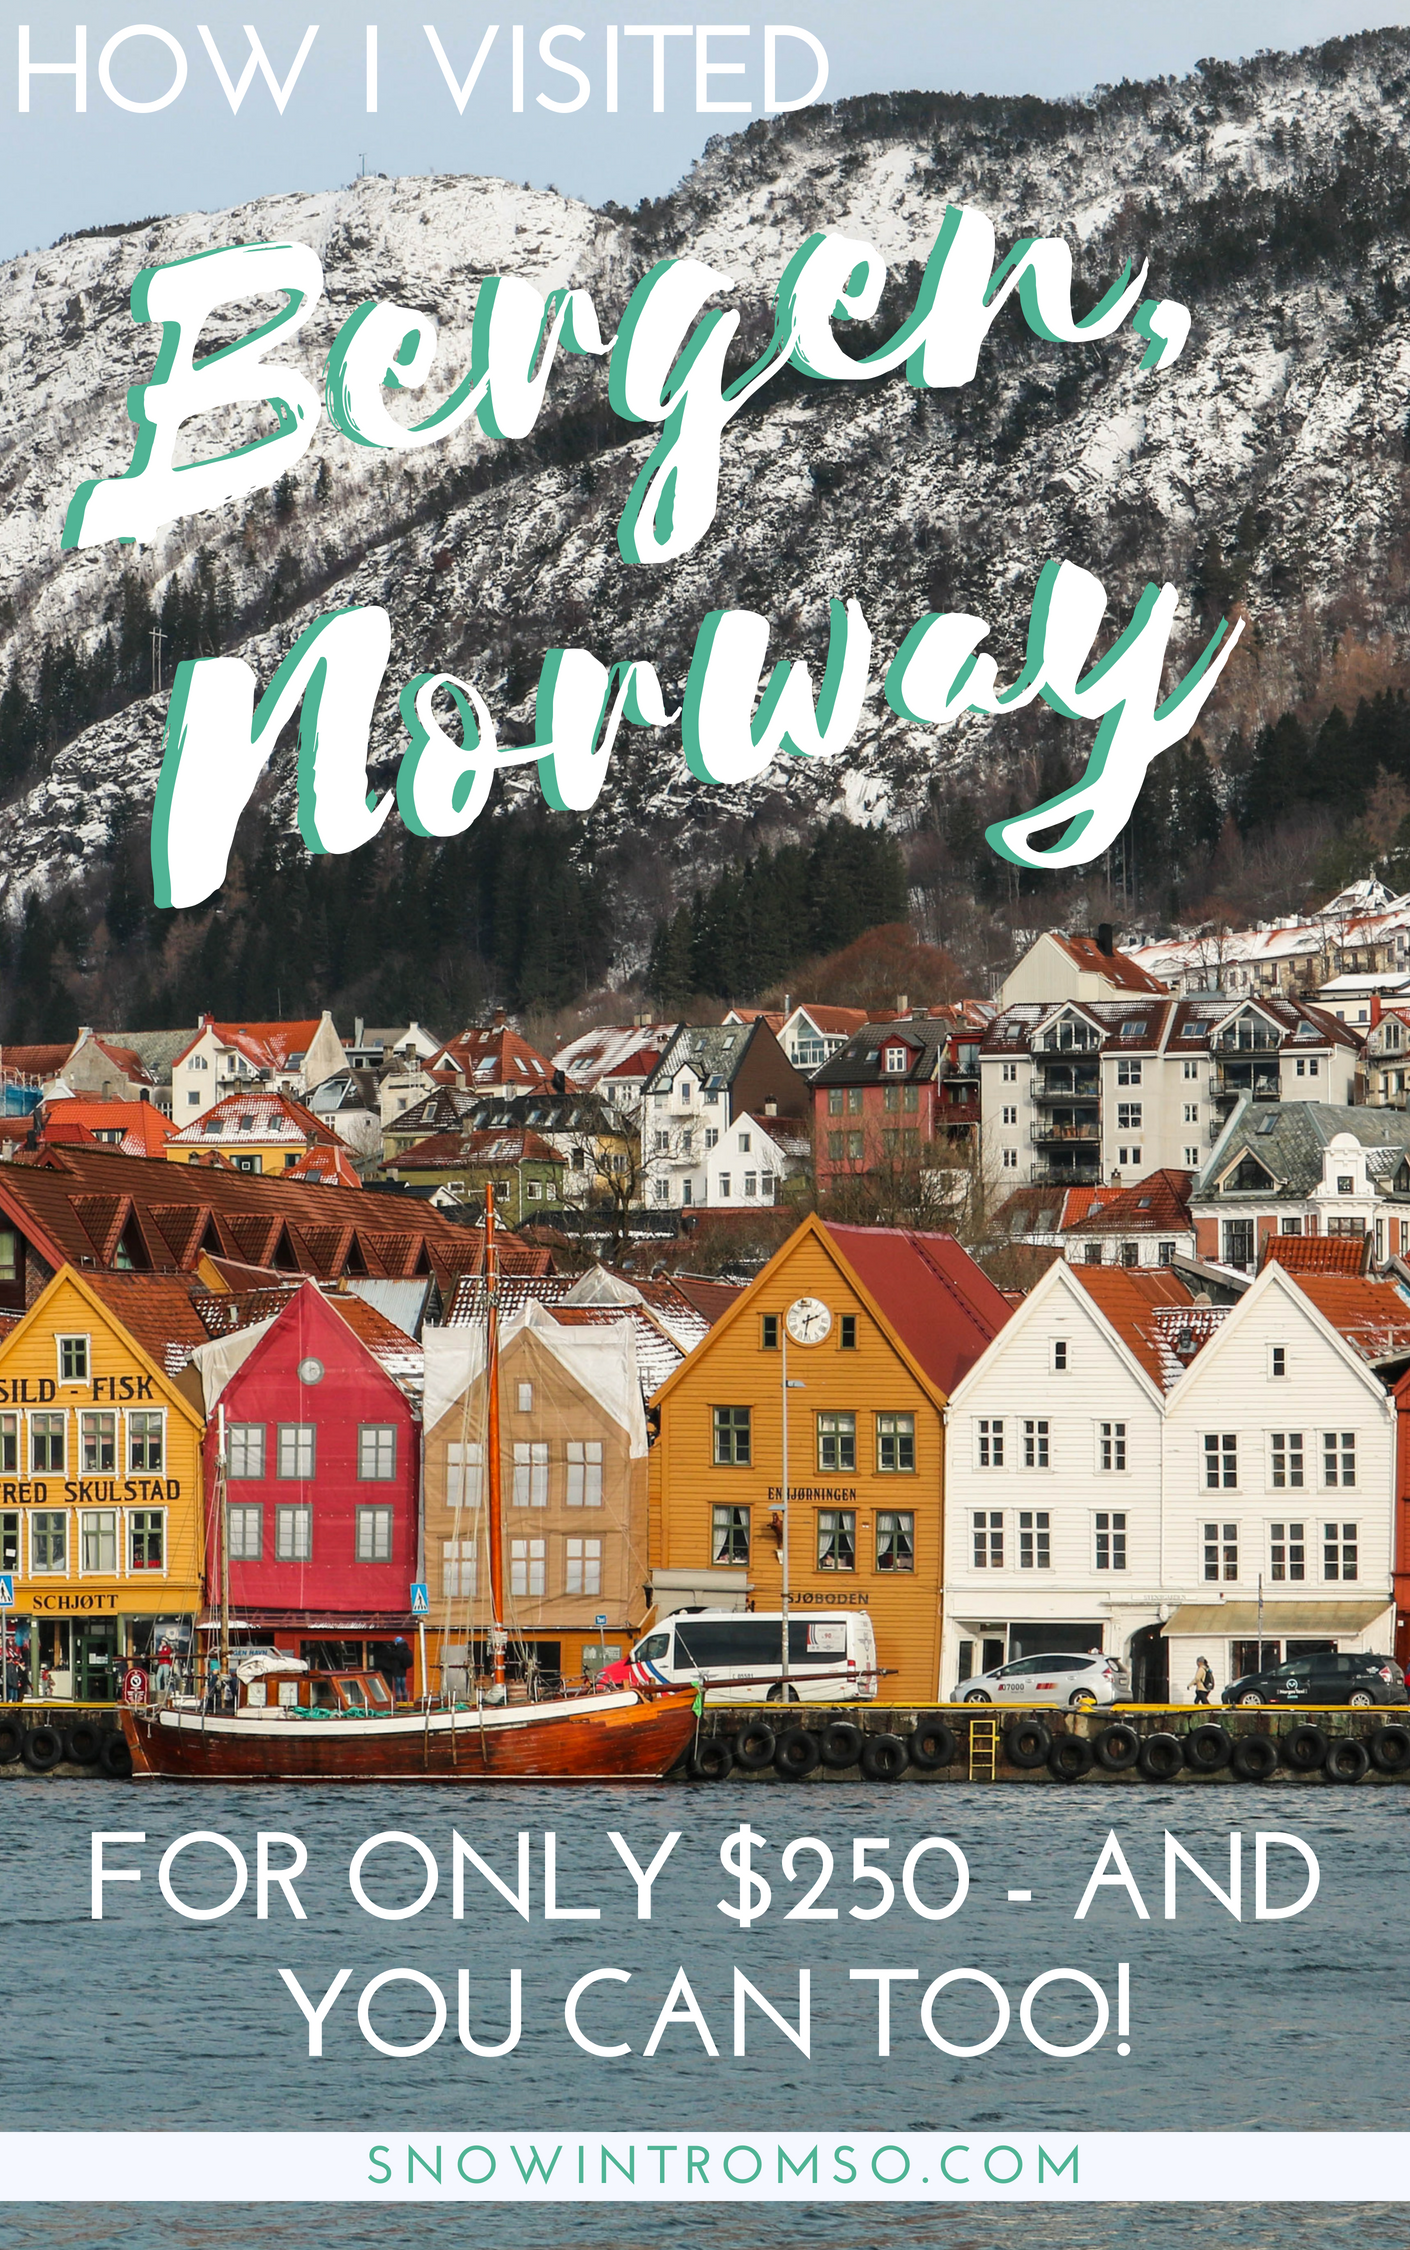 Click through to find out how I visited Bergen for only $250 - and how you can do the same!